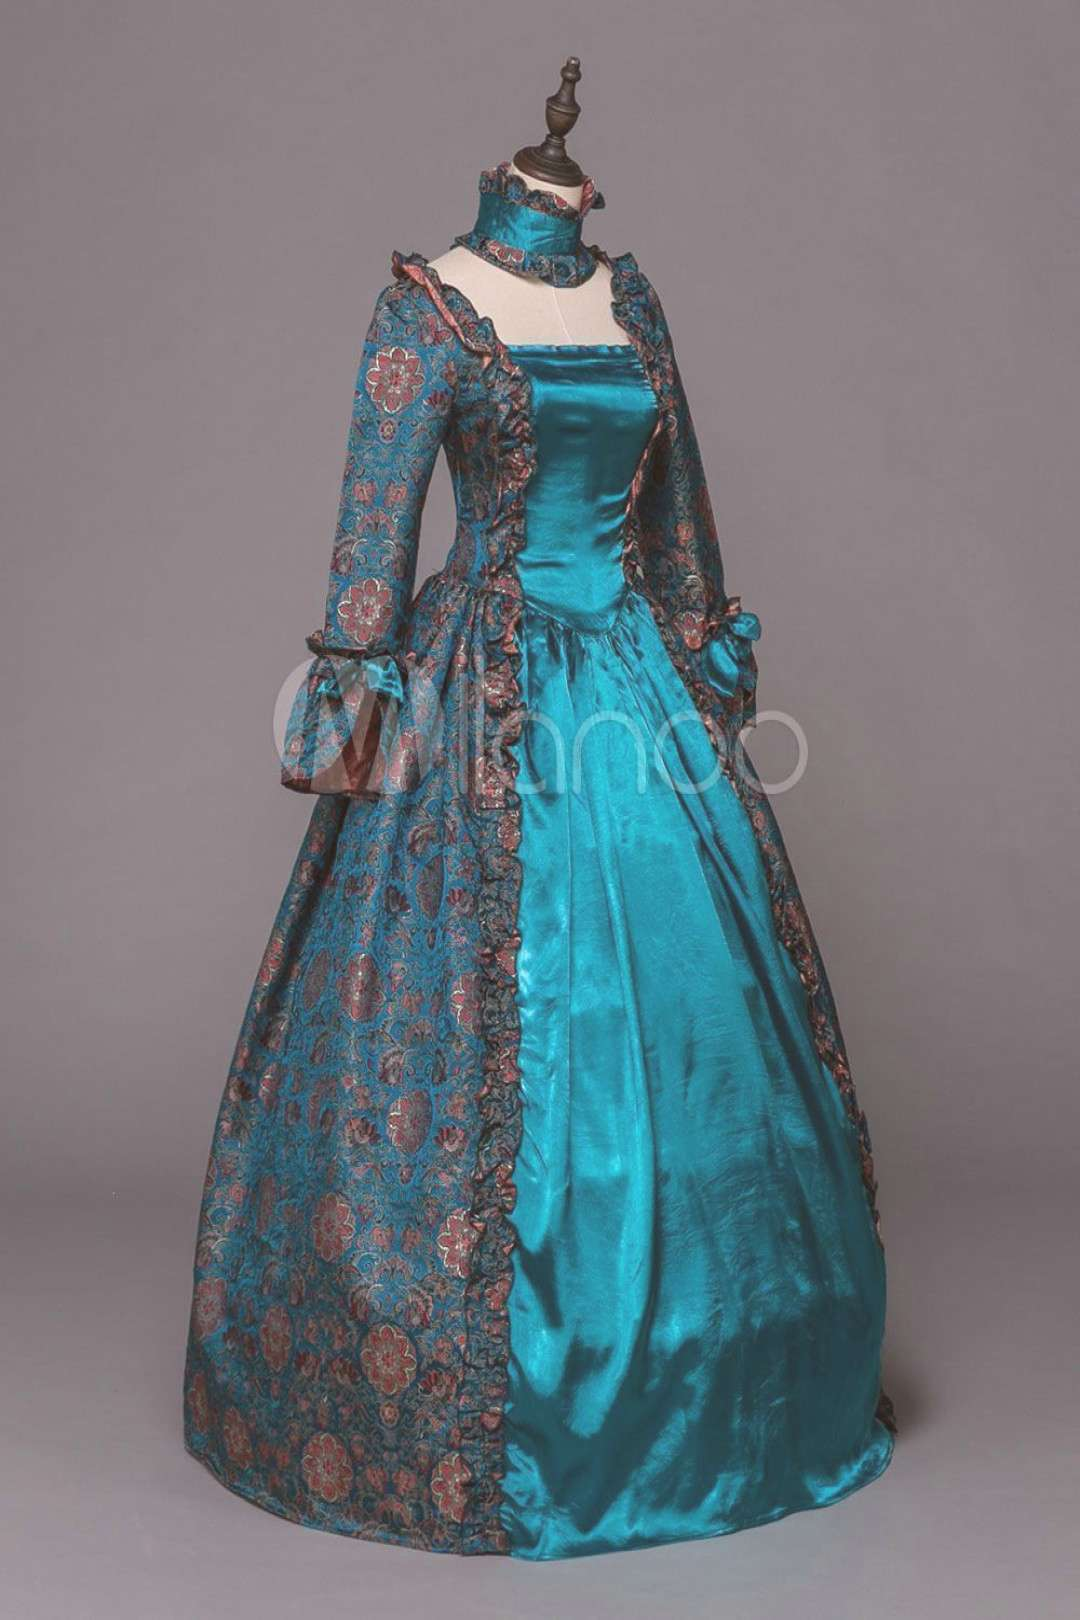 Retro Costume Victorian Dress Baroque Masquerade Ball Gowns Blue Floral Long Sleeve Vintage Costu